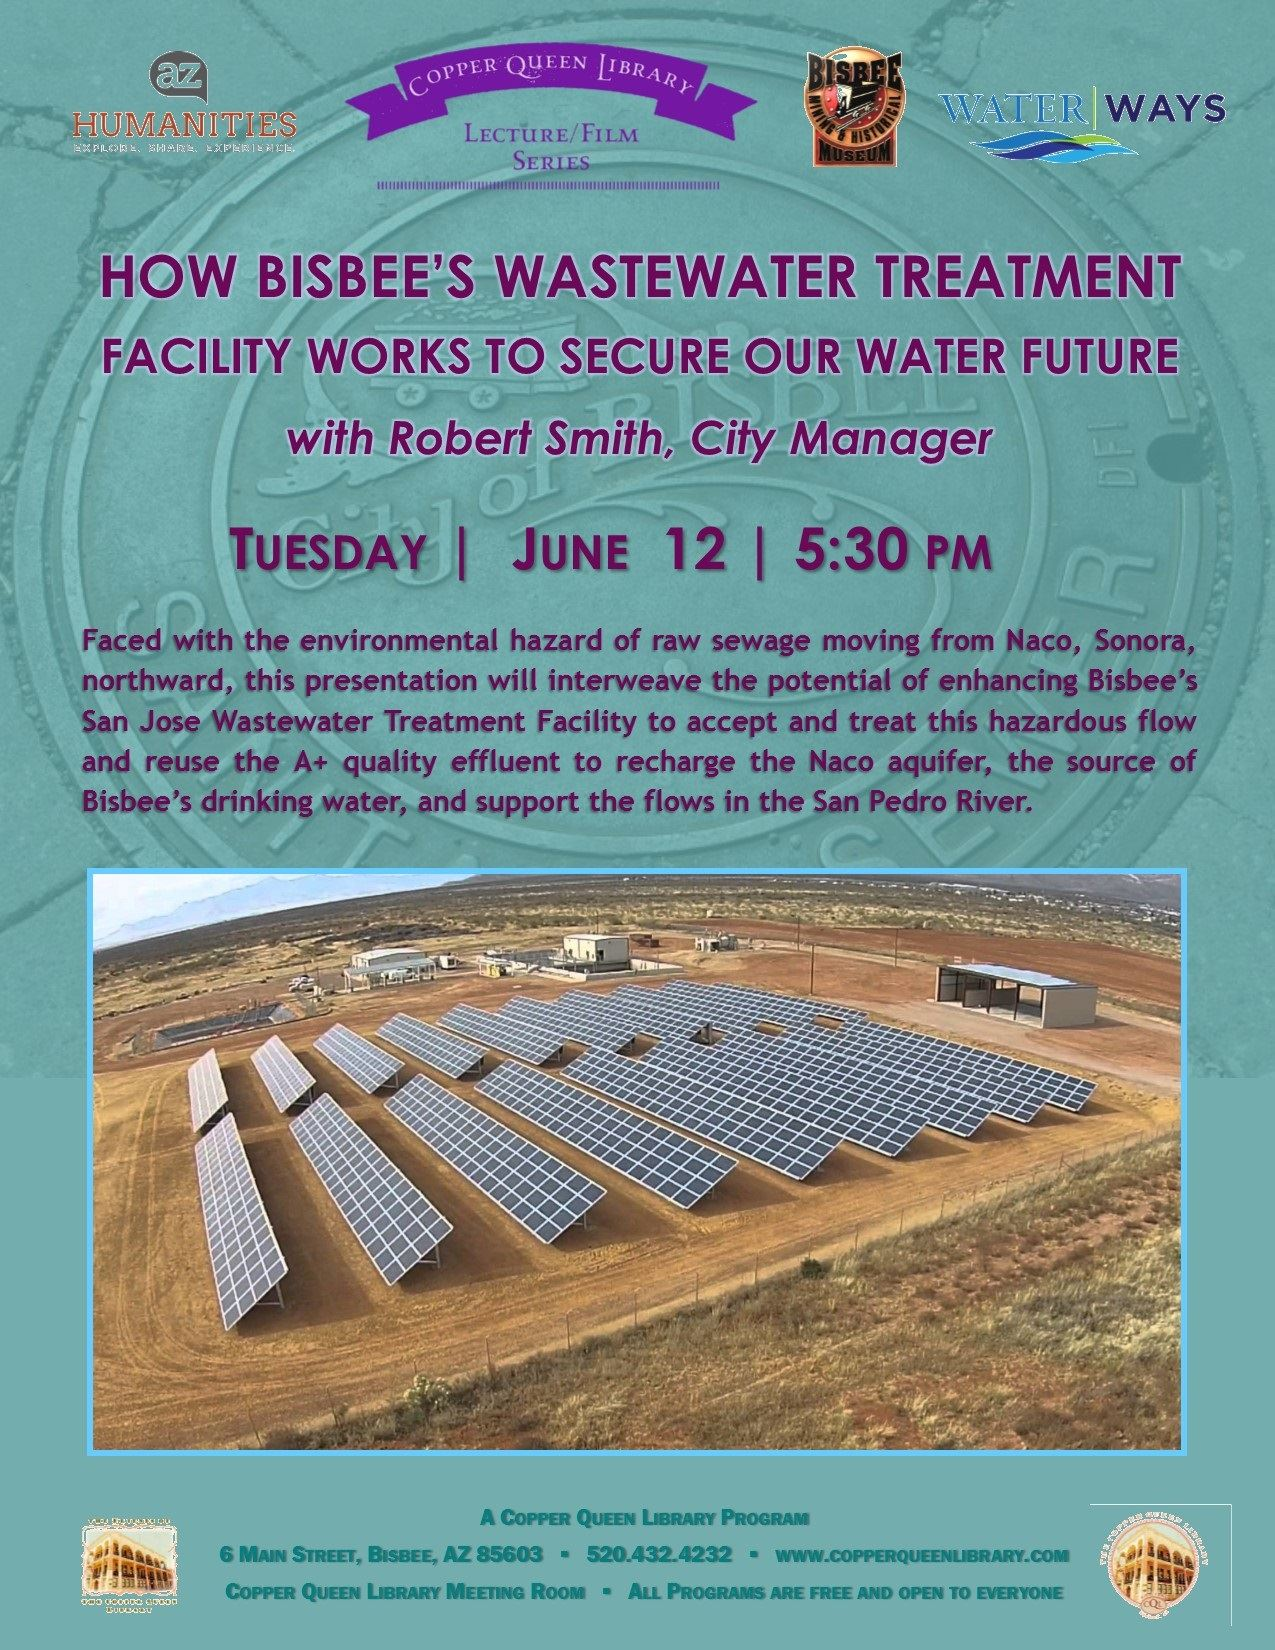 WATER WAYS WASTEWATER 6.12.18 8.5 X 11